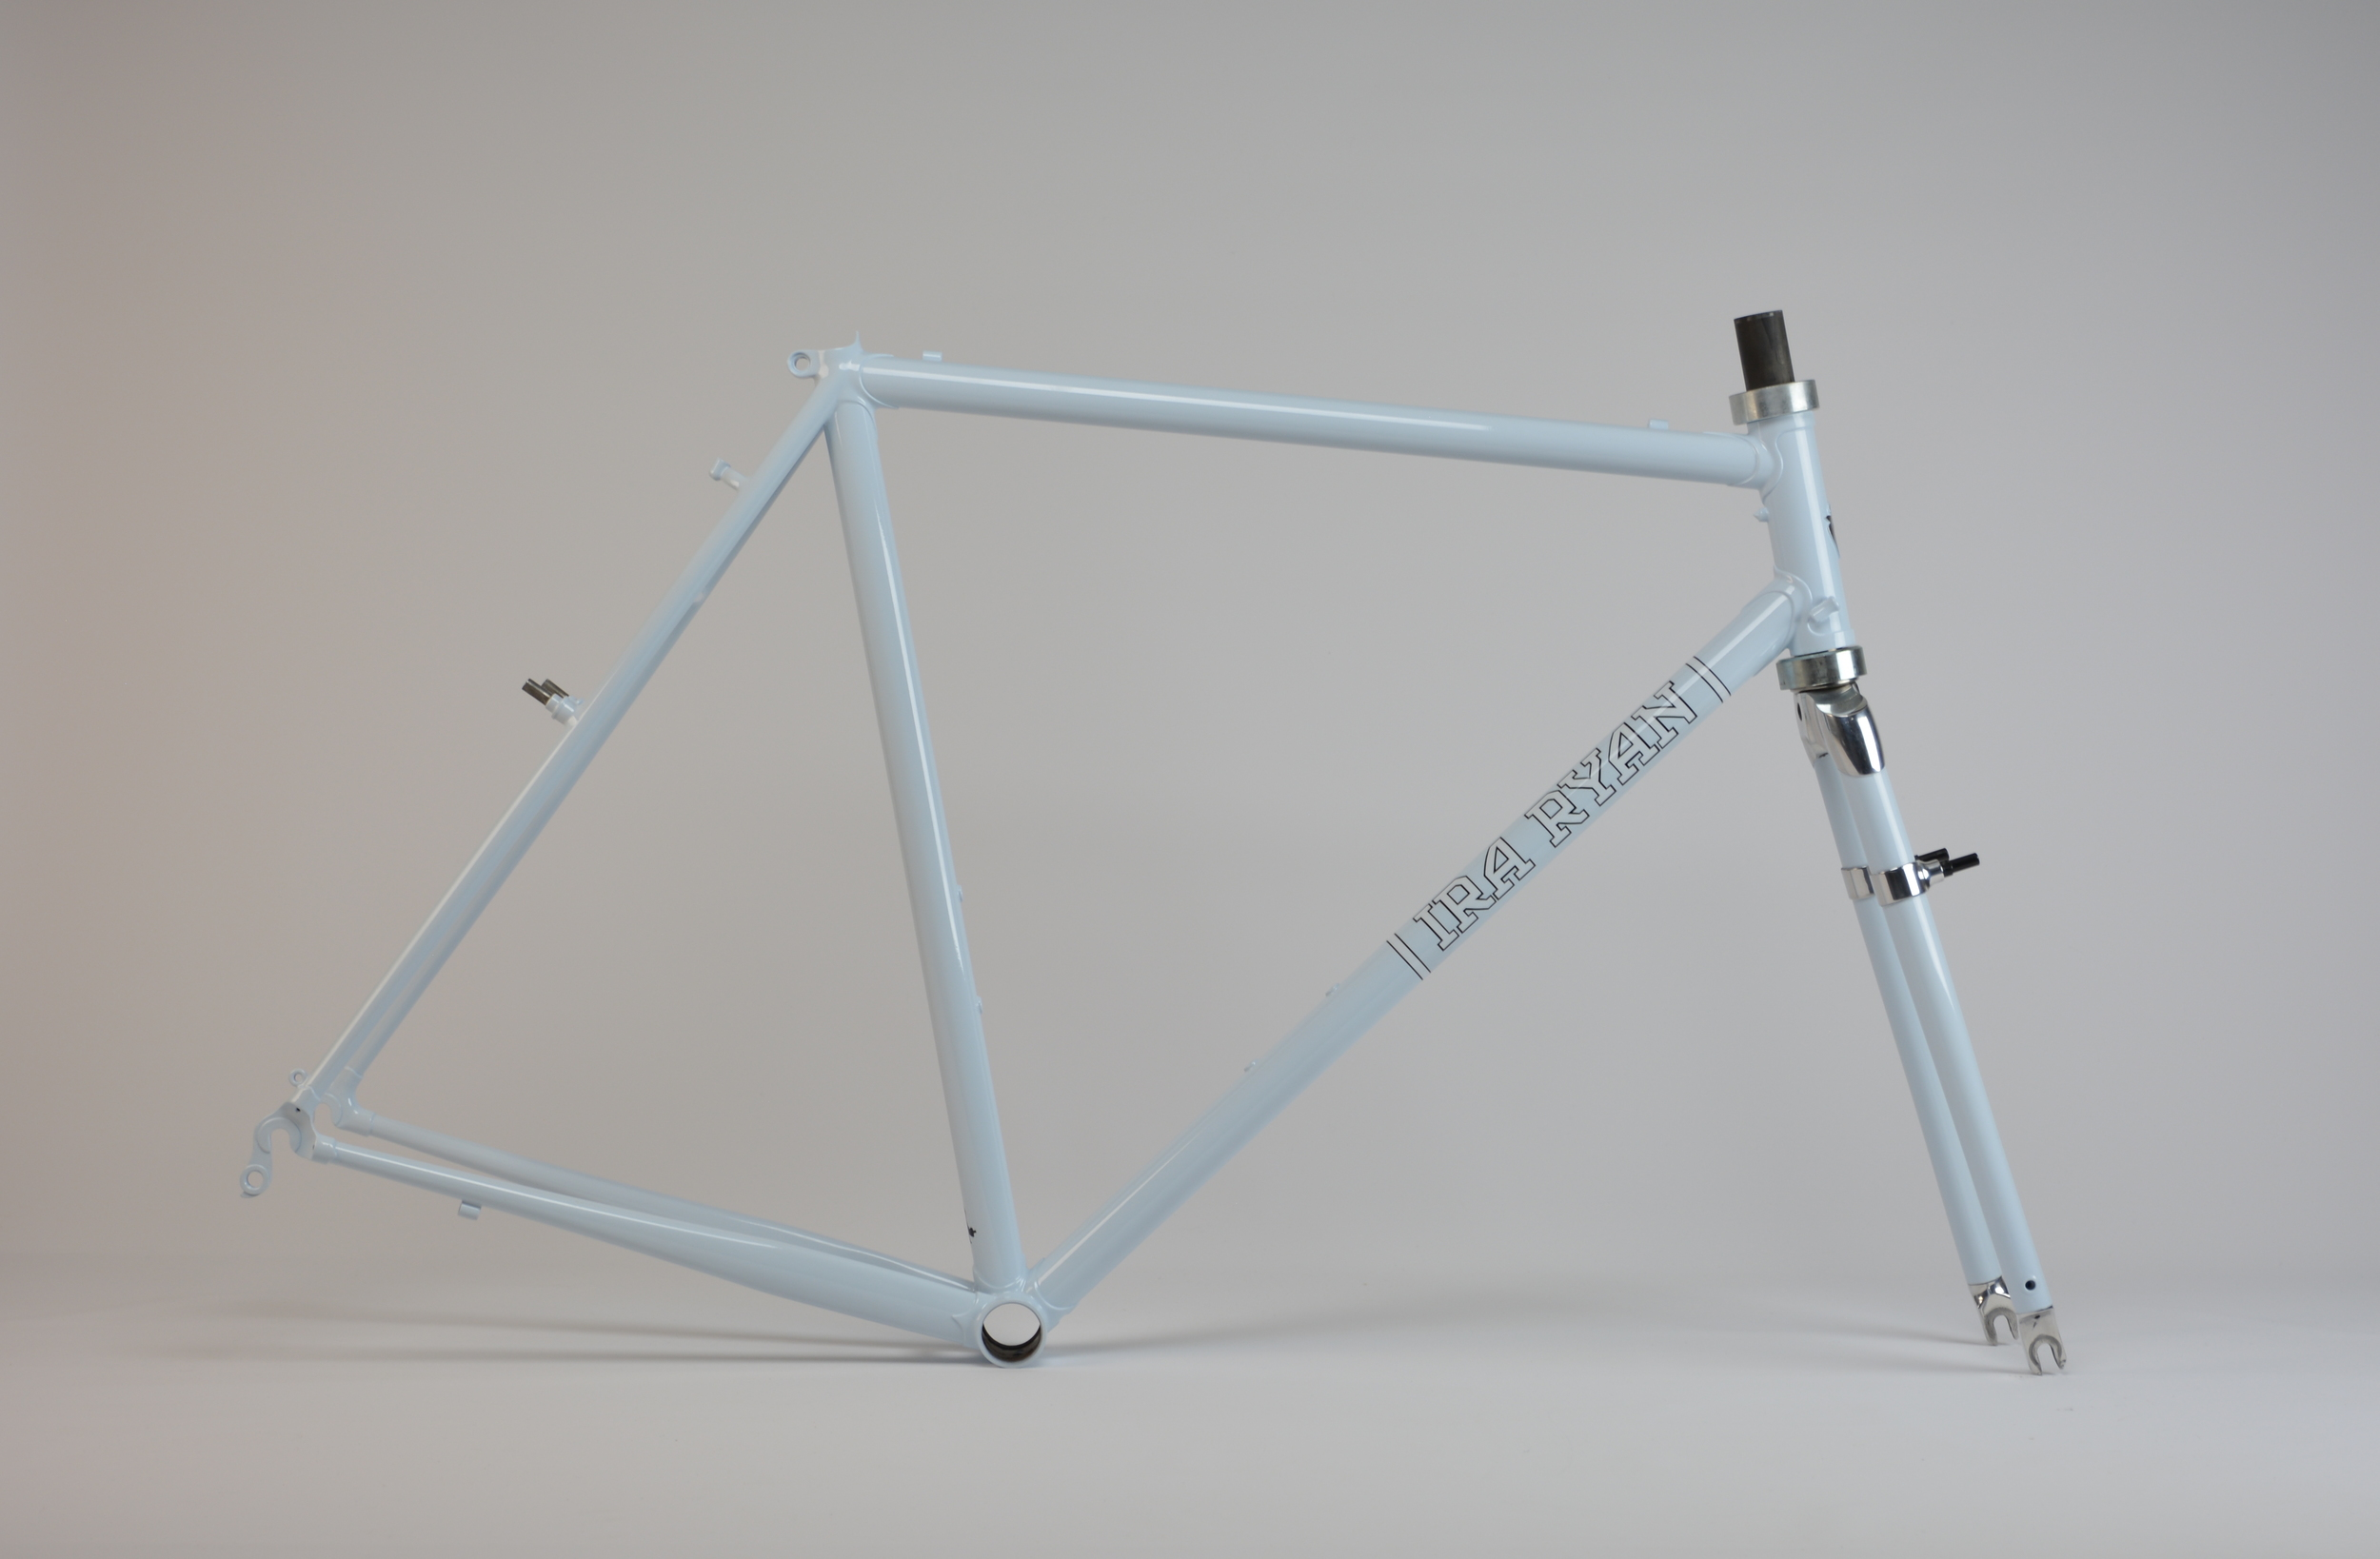 ira-ryan-cyclocross-refinish_24660916049_o.jpg